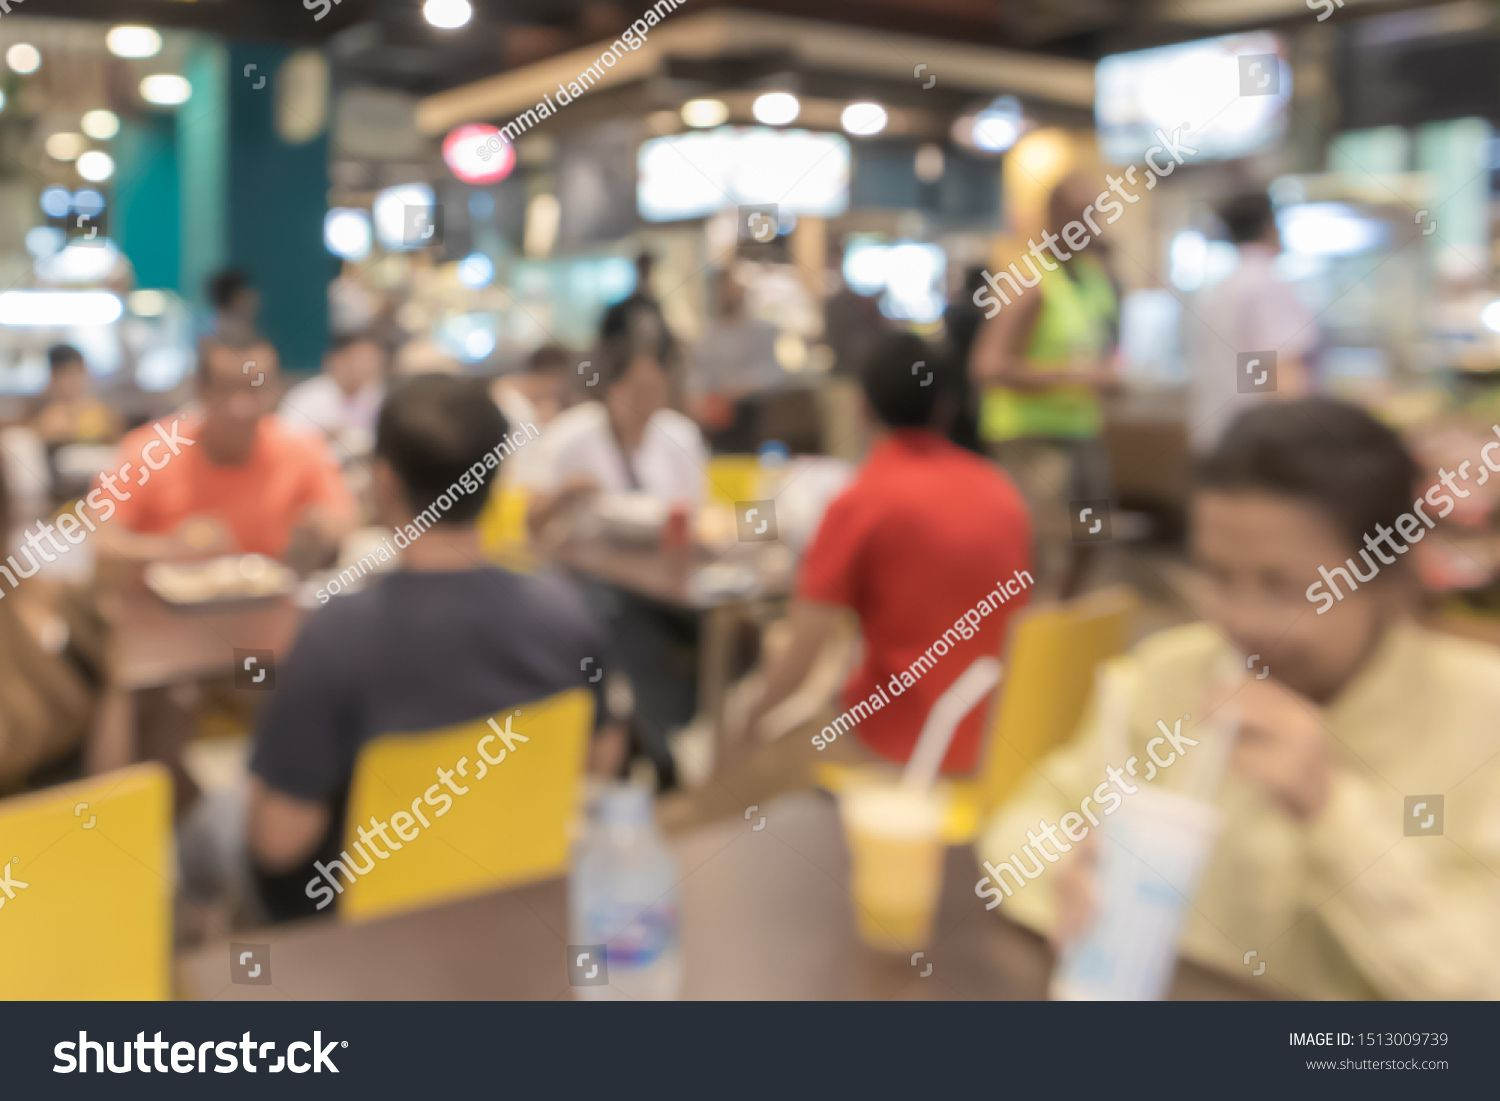 Blurred, People eating and drinking in food center of Department store, backgrounds #Sponsored , #Ad, #eating#drinking#Blurred#People